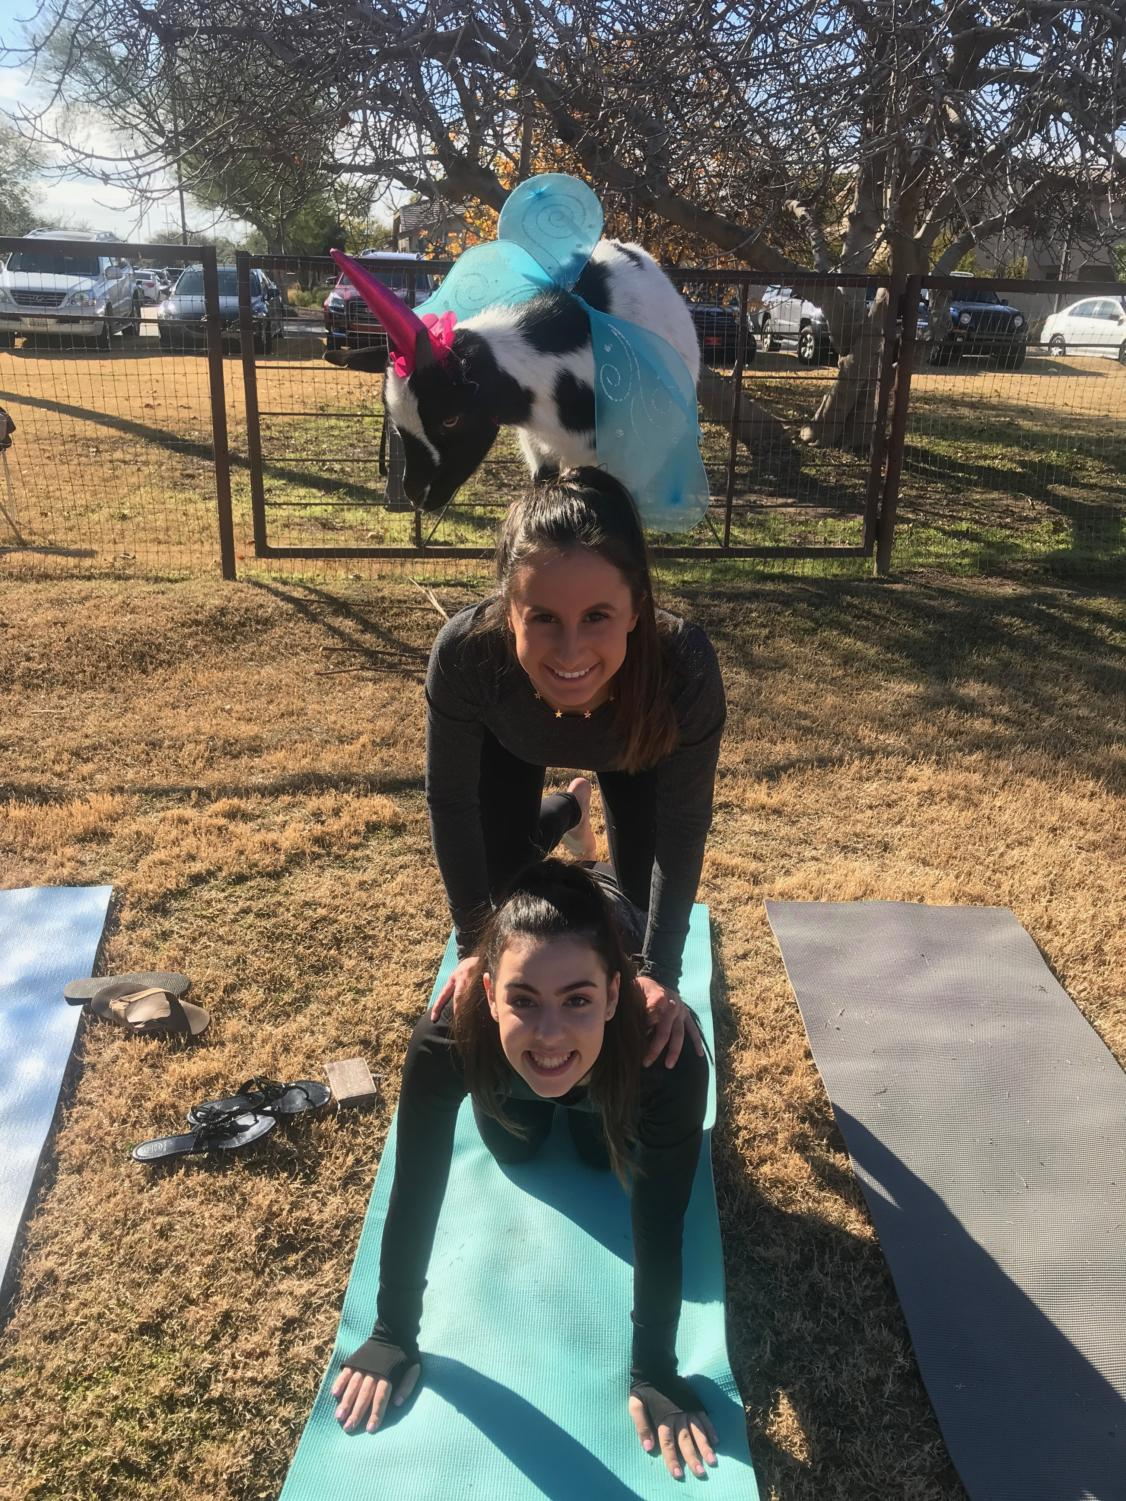 Another couples pose similar to a totem pole of Kit Blouin '20, Olivia Petrine '20 and a fairy-unicorn goat. This is one of the more simpler poses that one can perform with the goats. Pictured by an unknown yogi.